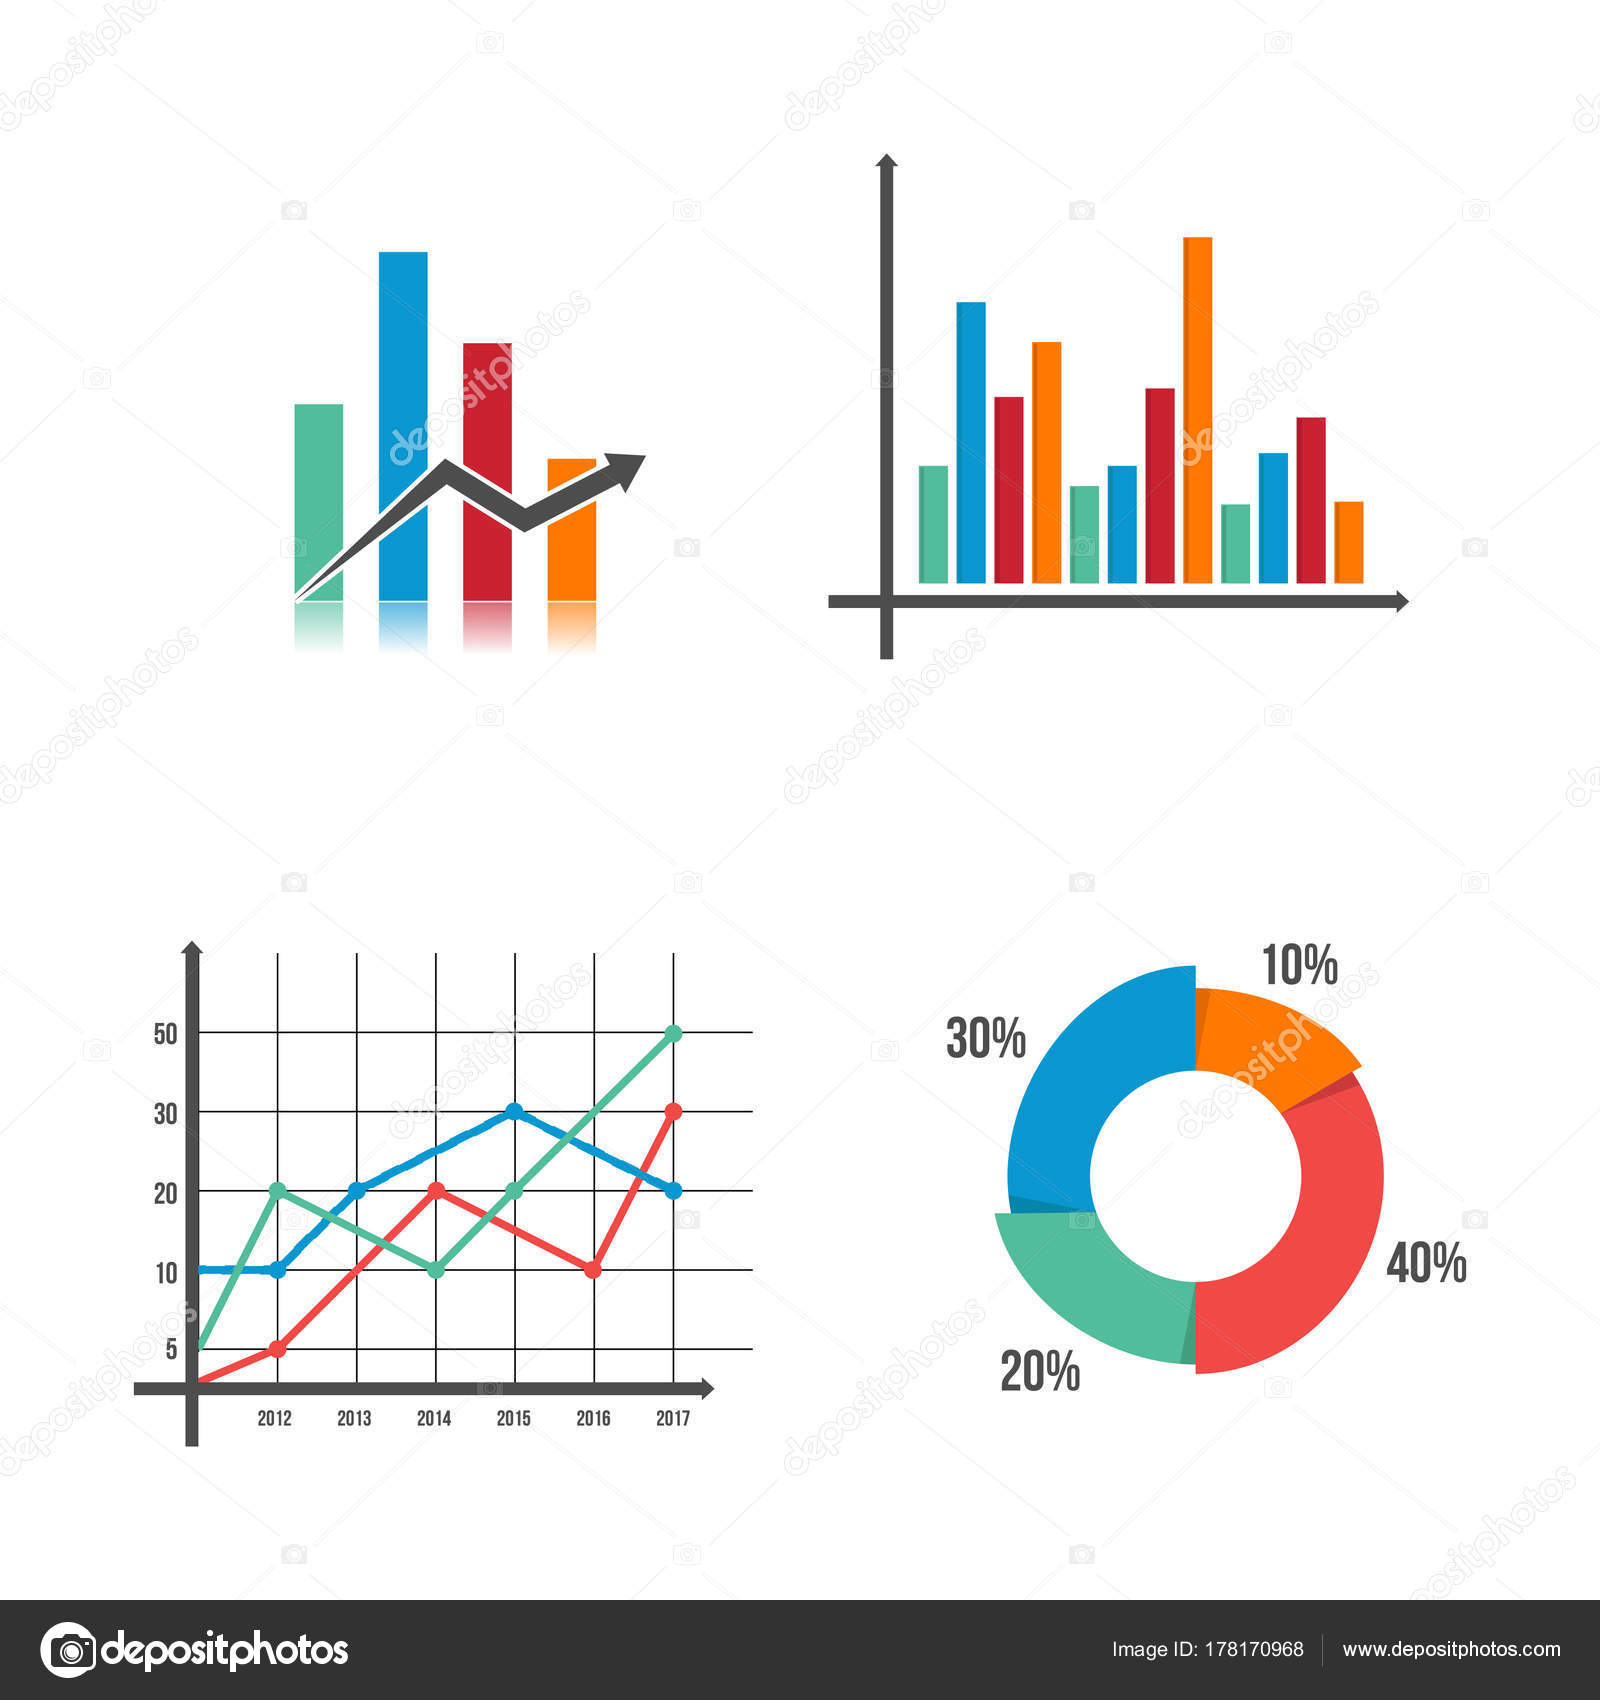 Data tools finance diagram graphic chart graphic business diagram data tools finance diagram and graphic chart and graphic business diagram data finance graph report information data statistic infographic analysis ccuart Images